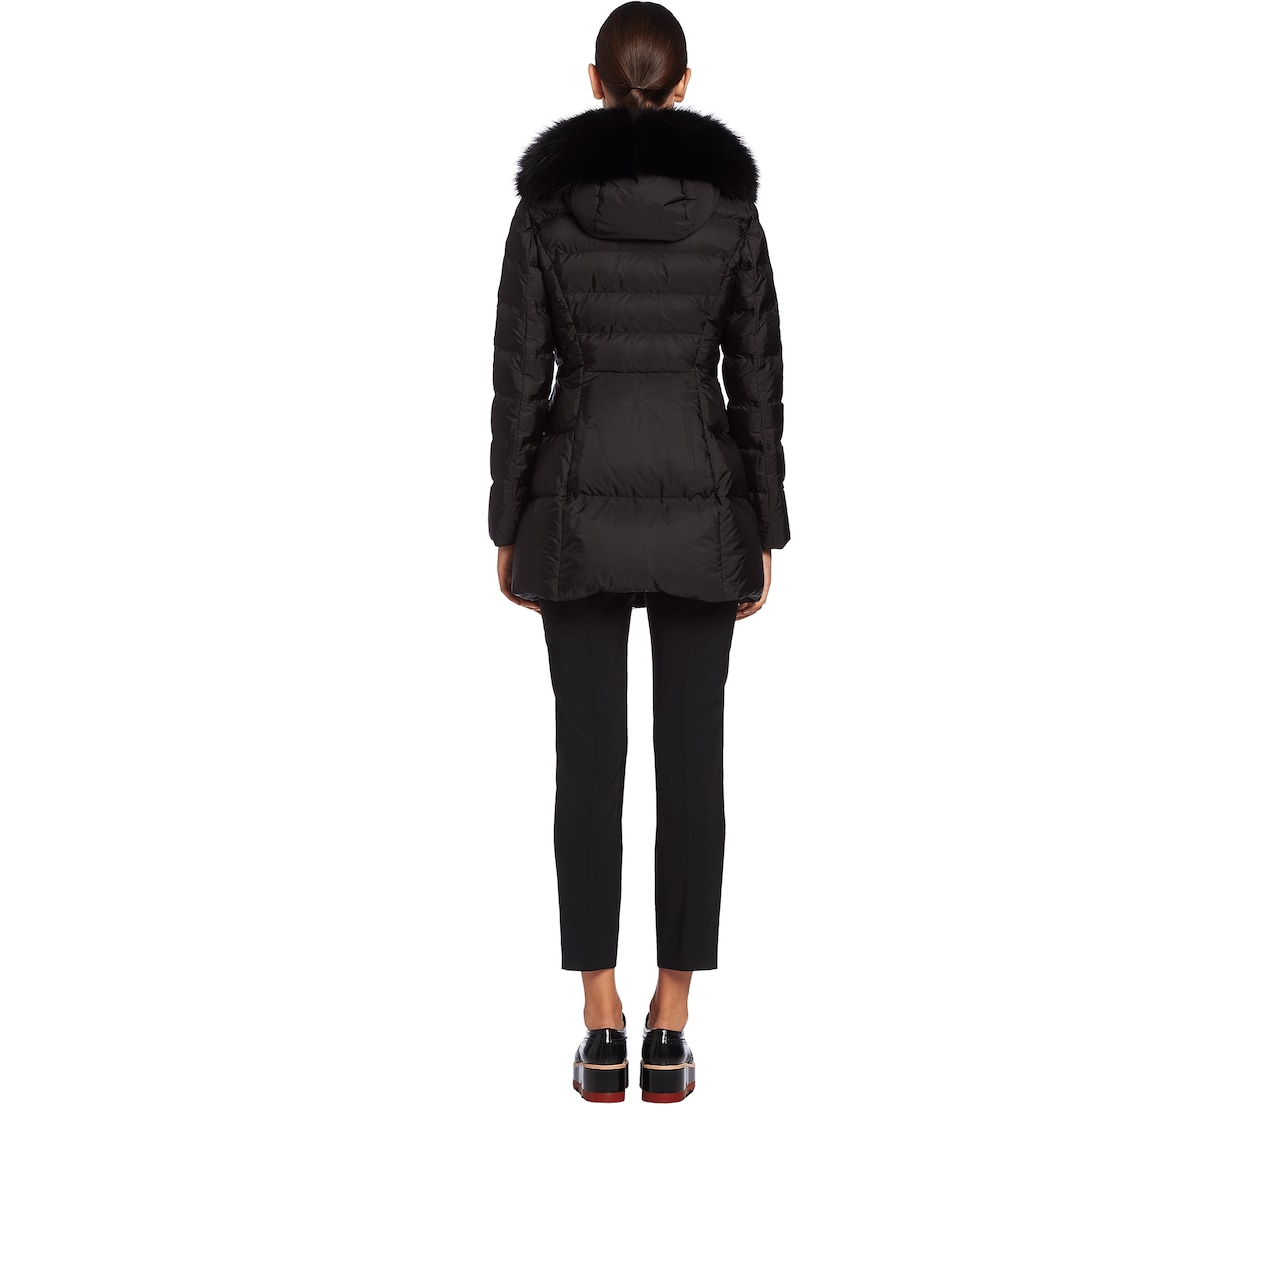 Prada Fur-Trimmed Nylon Down Jacket 4